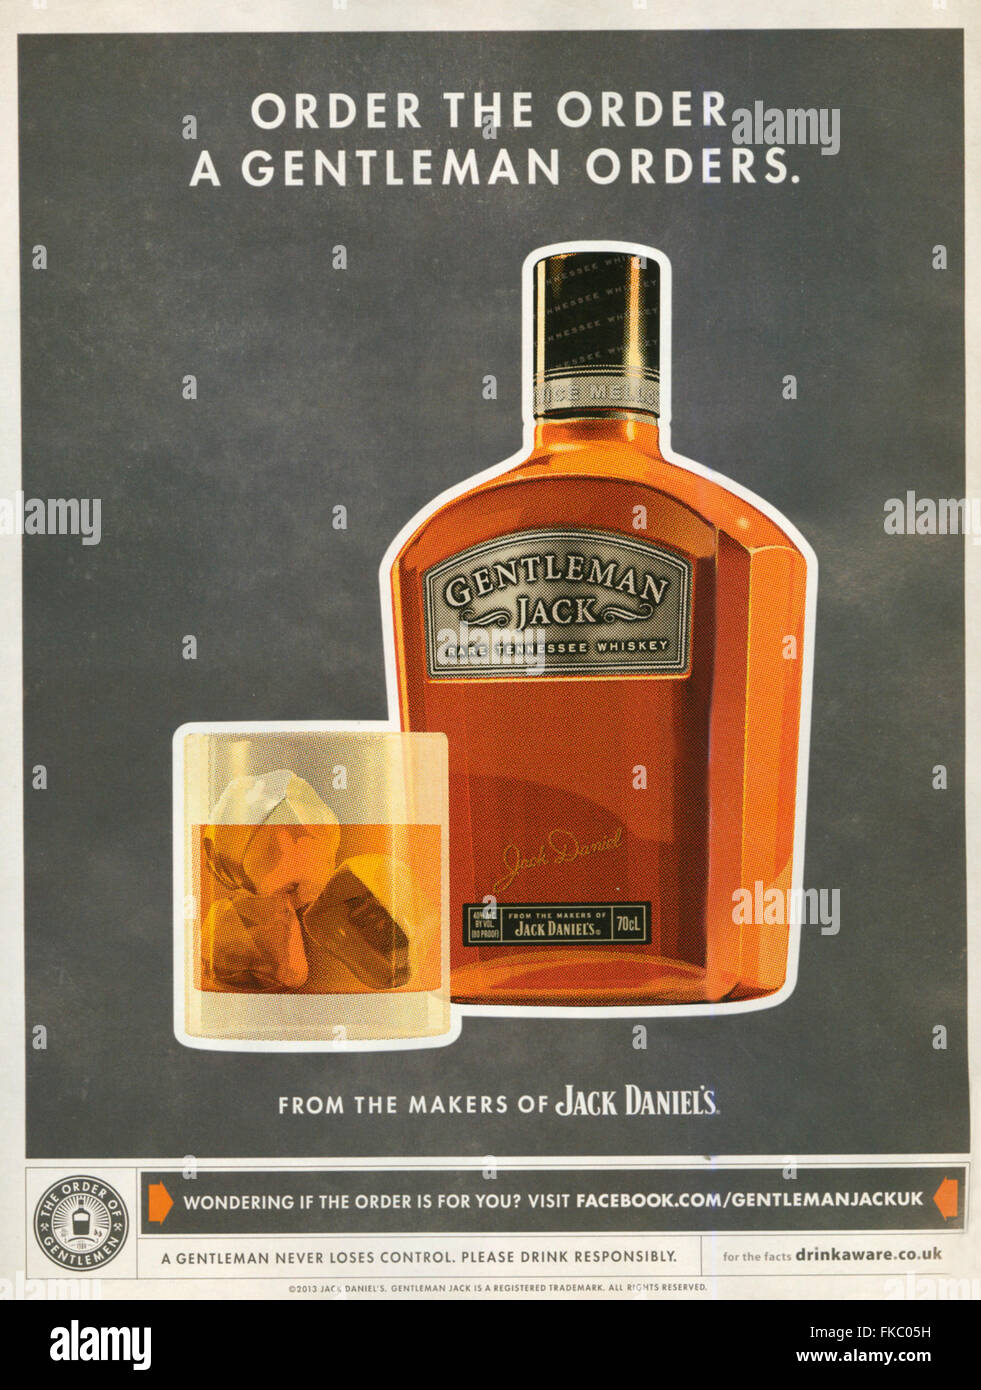 2010s uk jack daniel s magazine advert stock photo royalty 2010s uk jack daniel s magazine advert stock photo